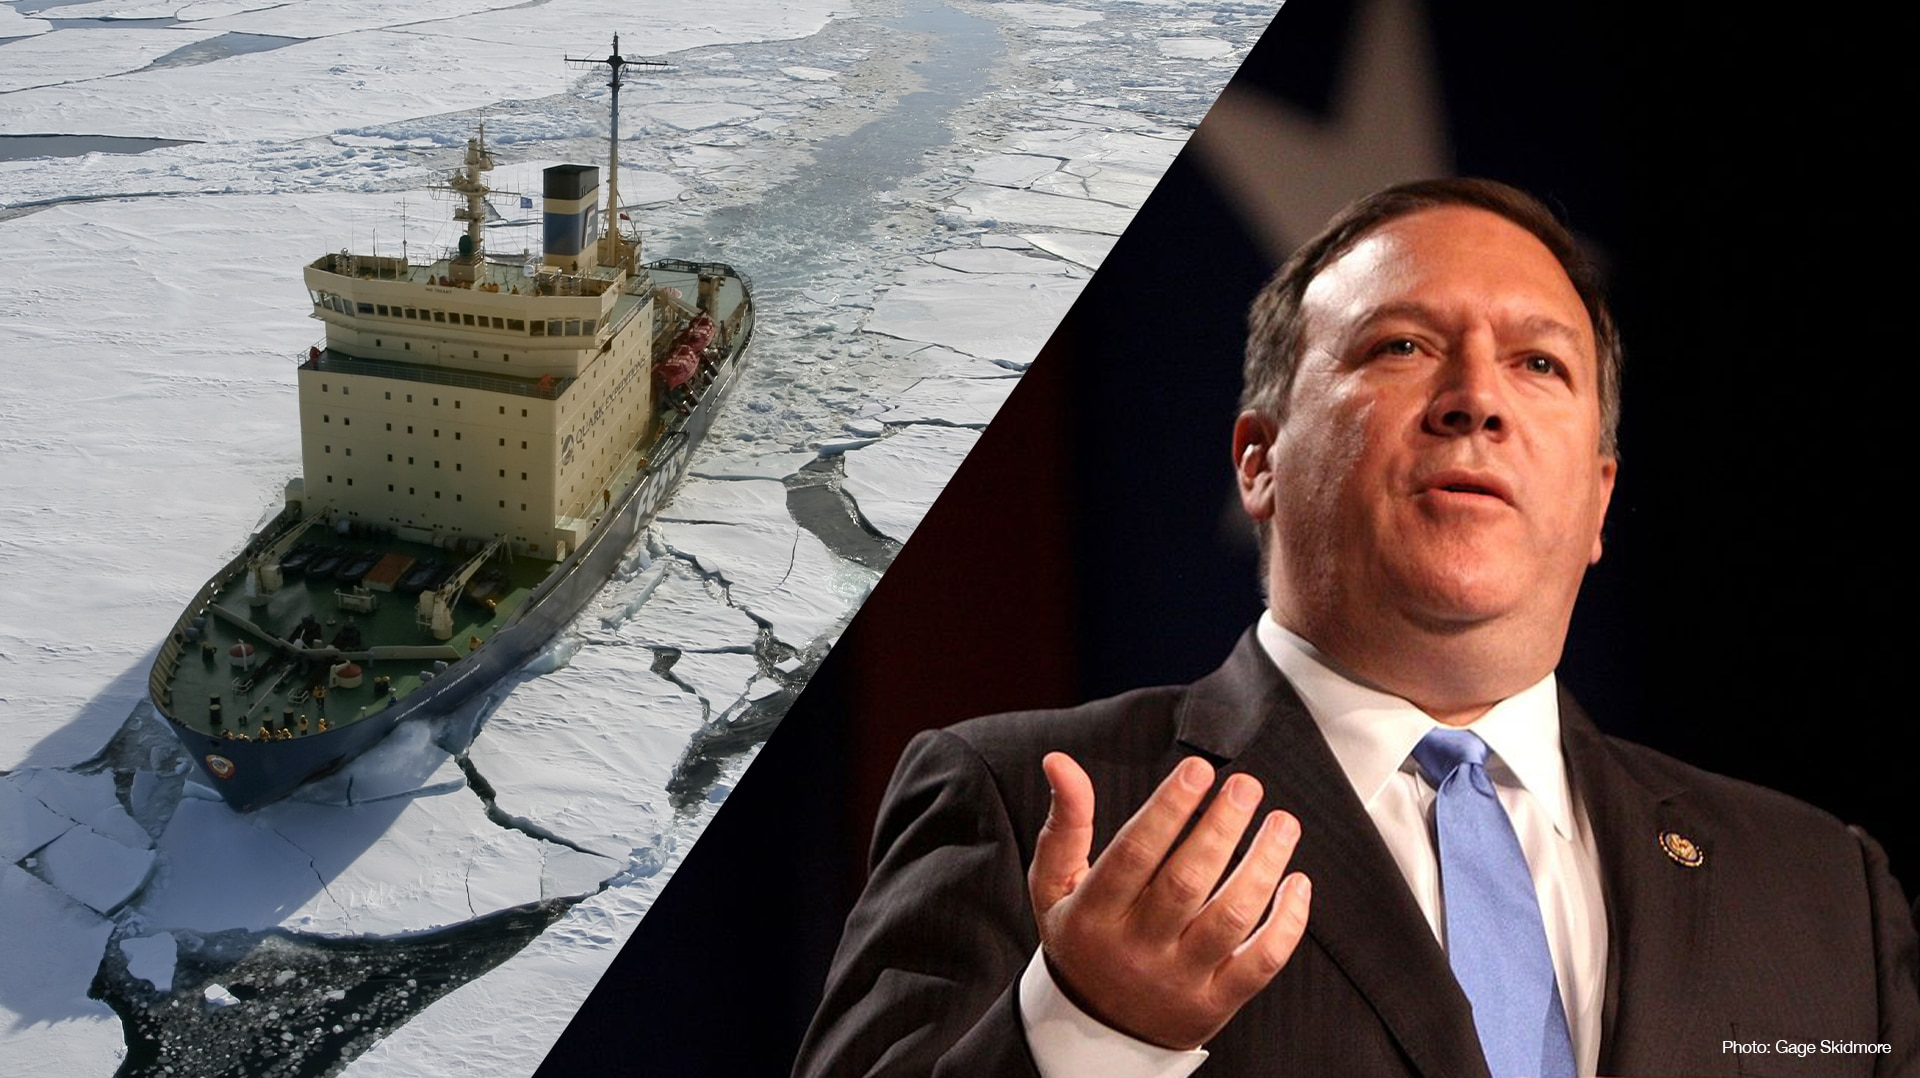 Secretary Pompeo, The Only Opportunity in the Arctic Ocean Is to Safeguard it Now.